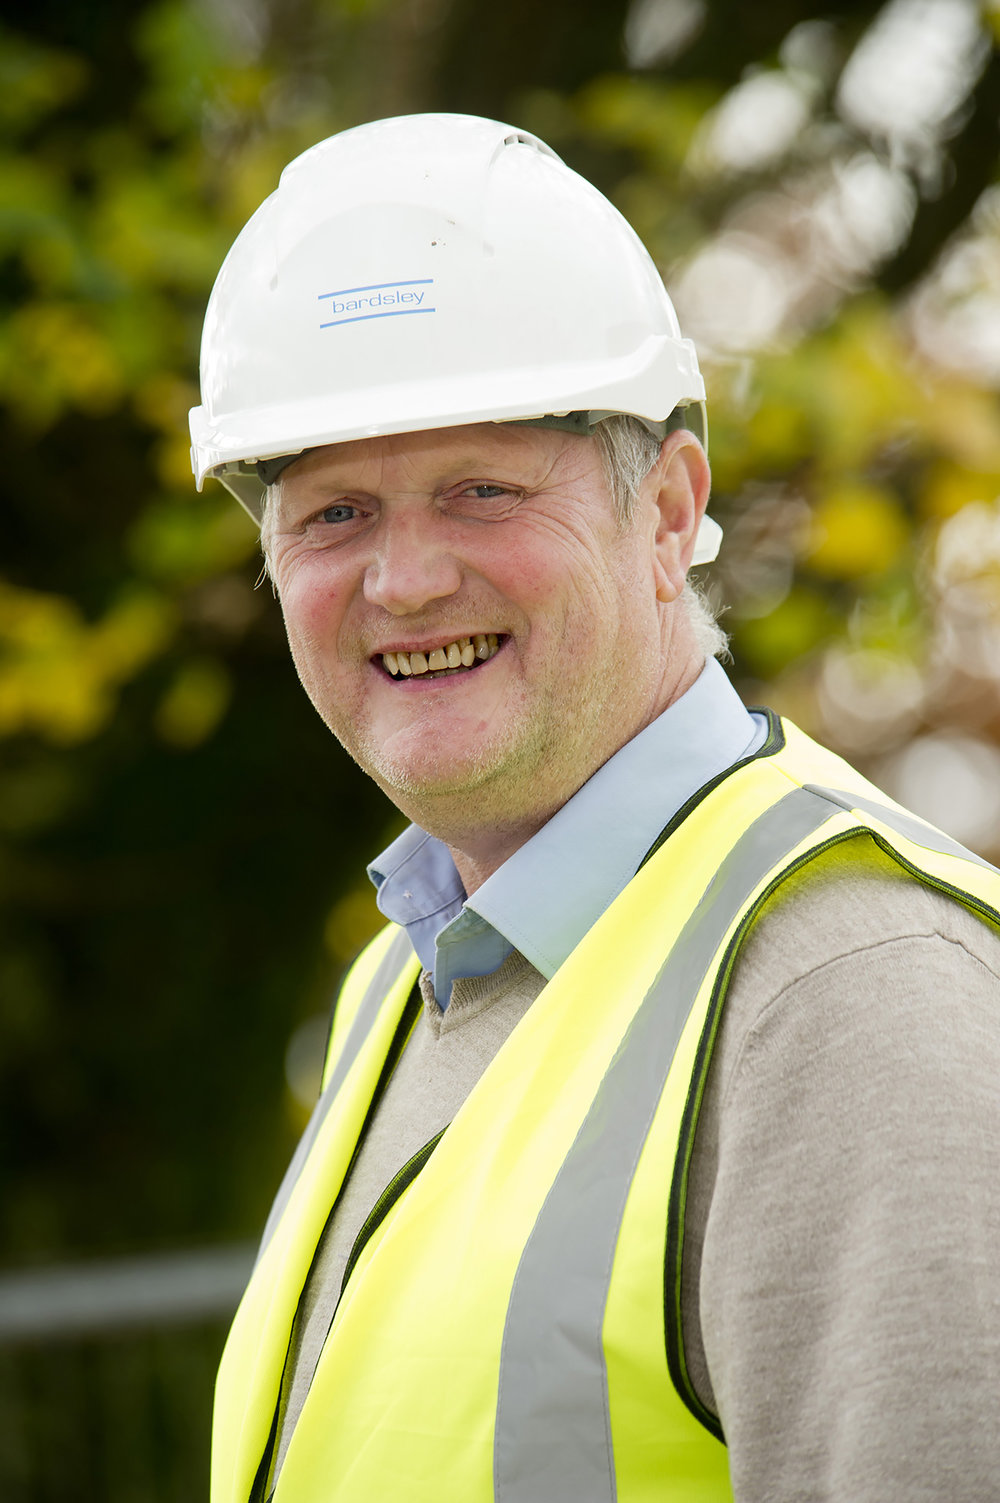 Lee Parkes Site Manager